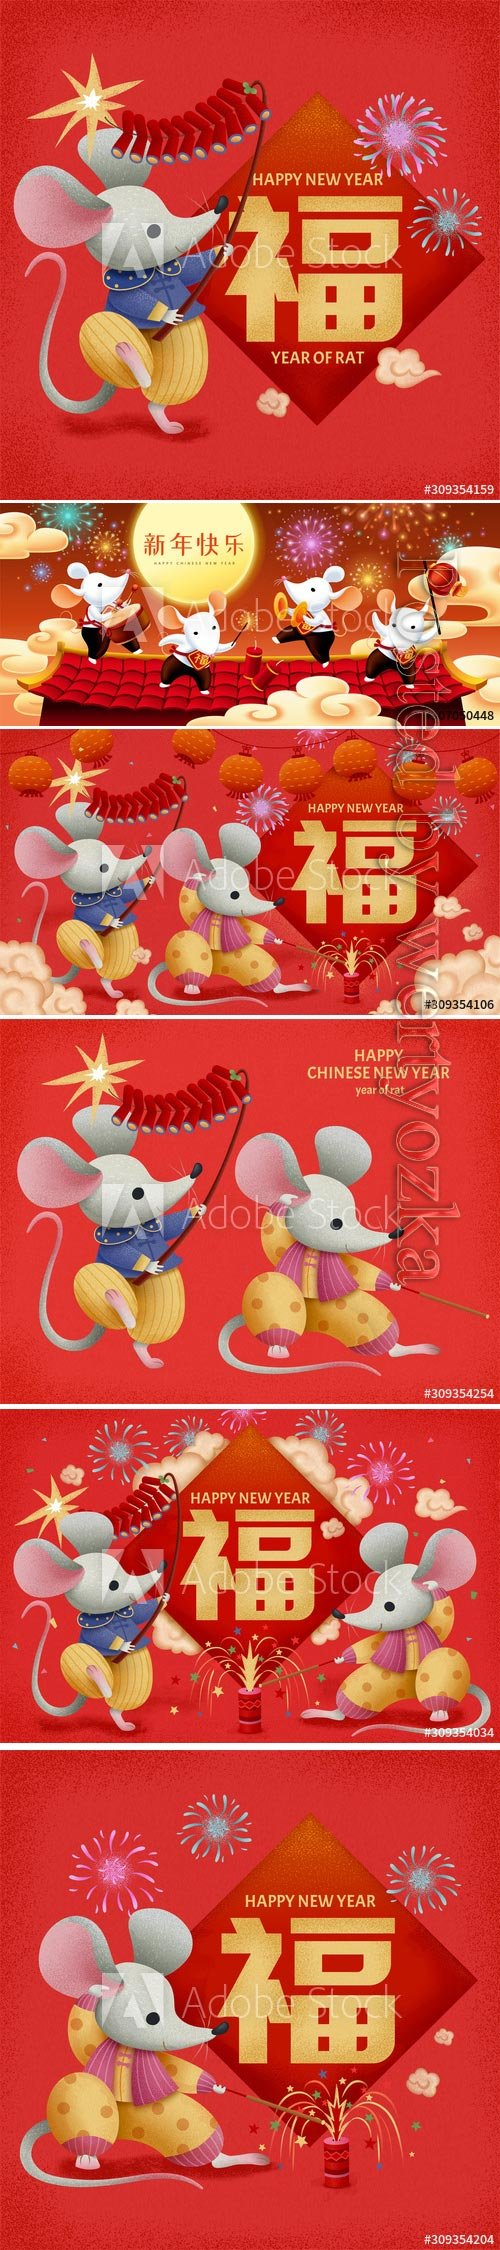 Mice lit firecrackers for new year vector design